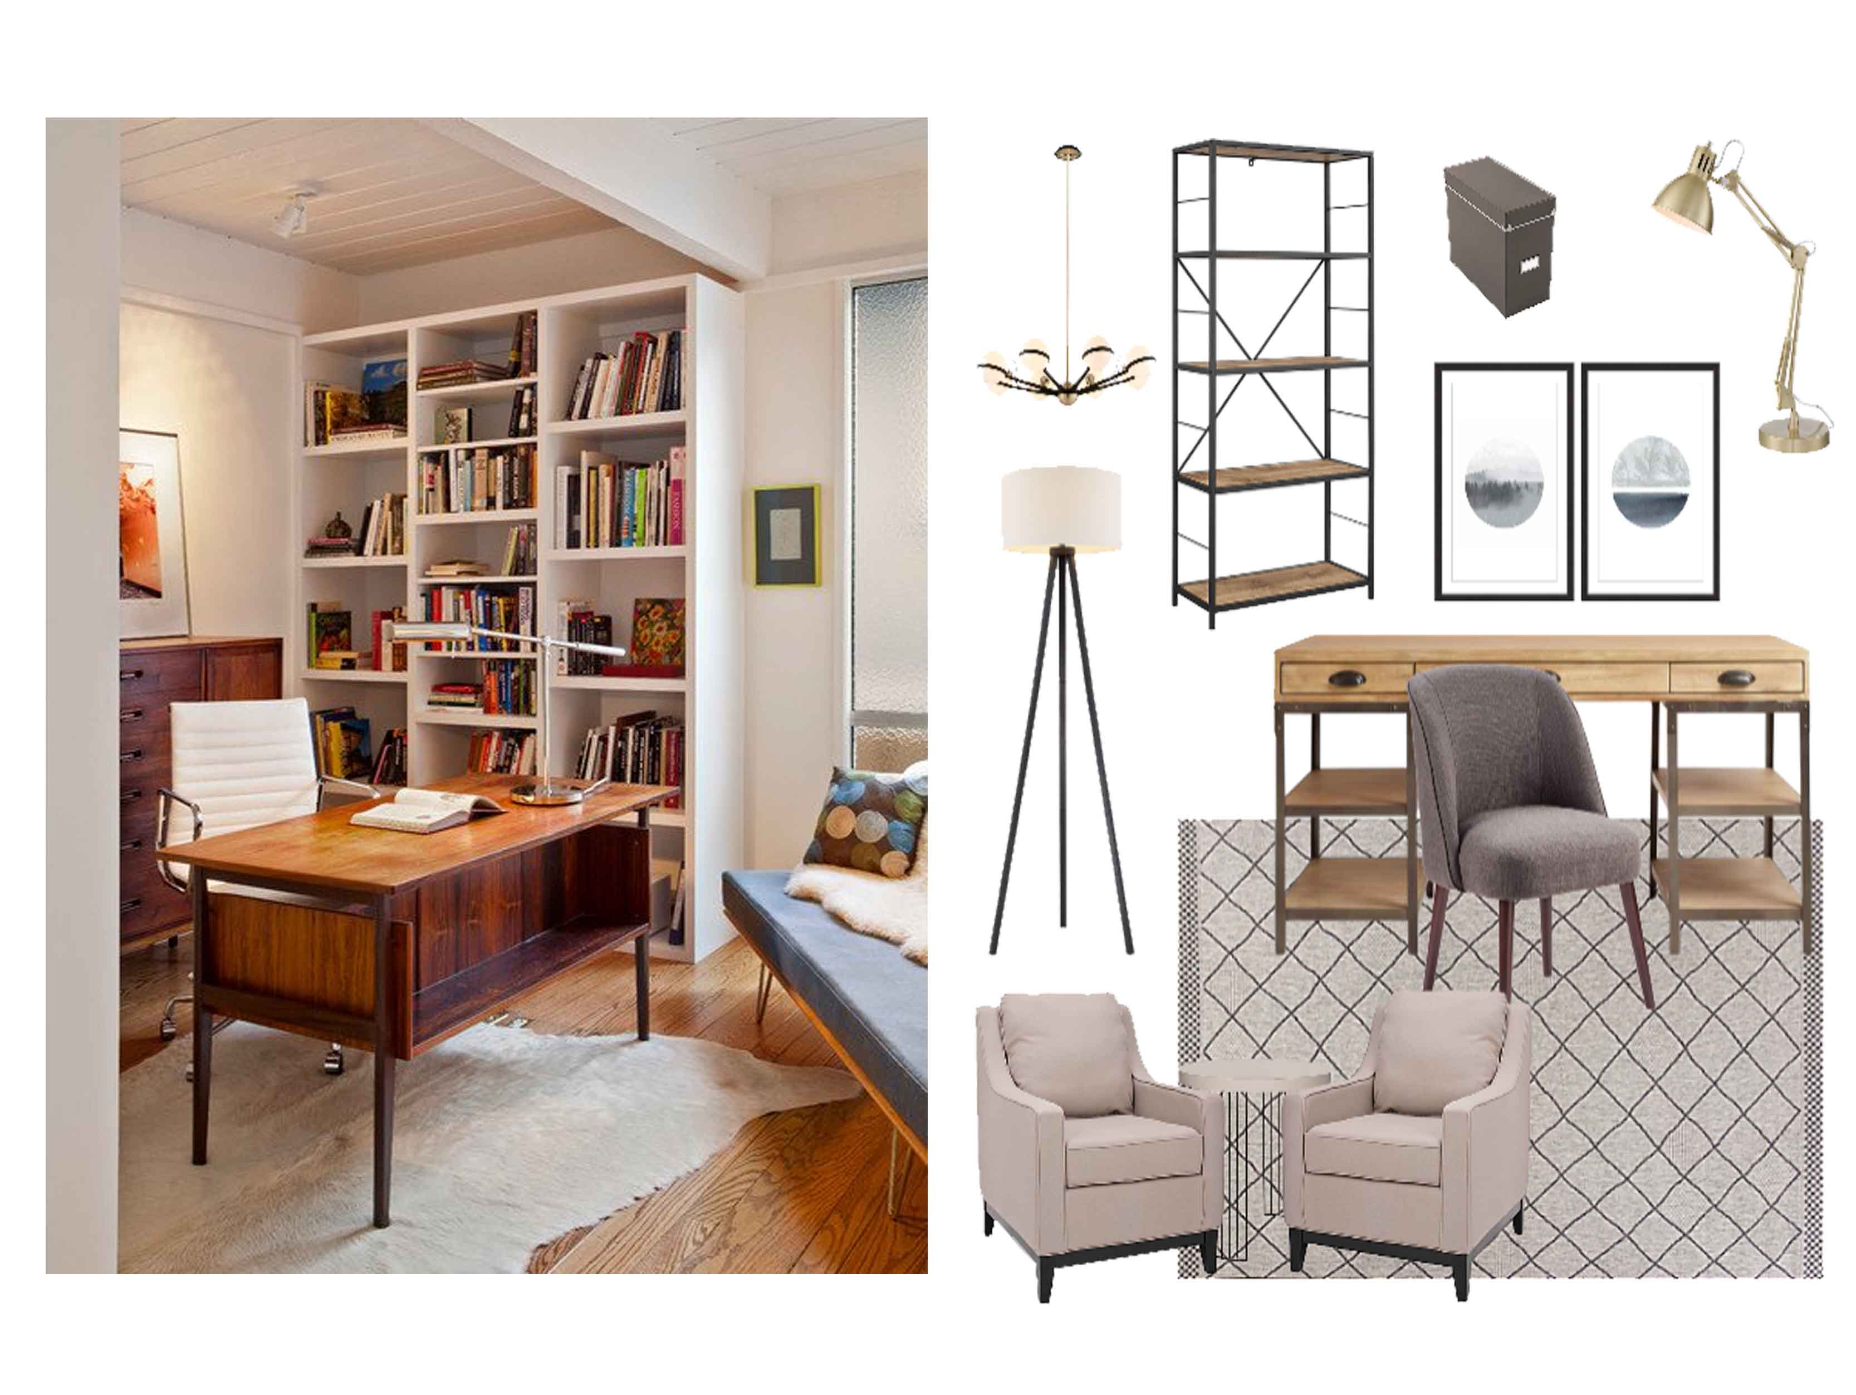 Online interior design Q&A for free from our designers | Decorist